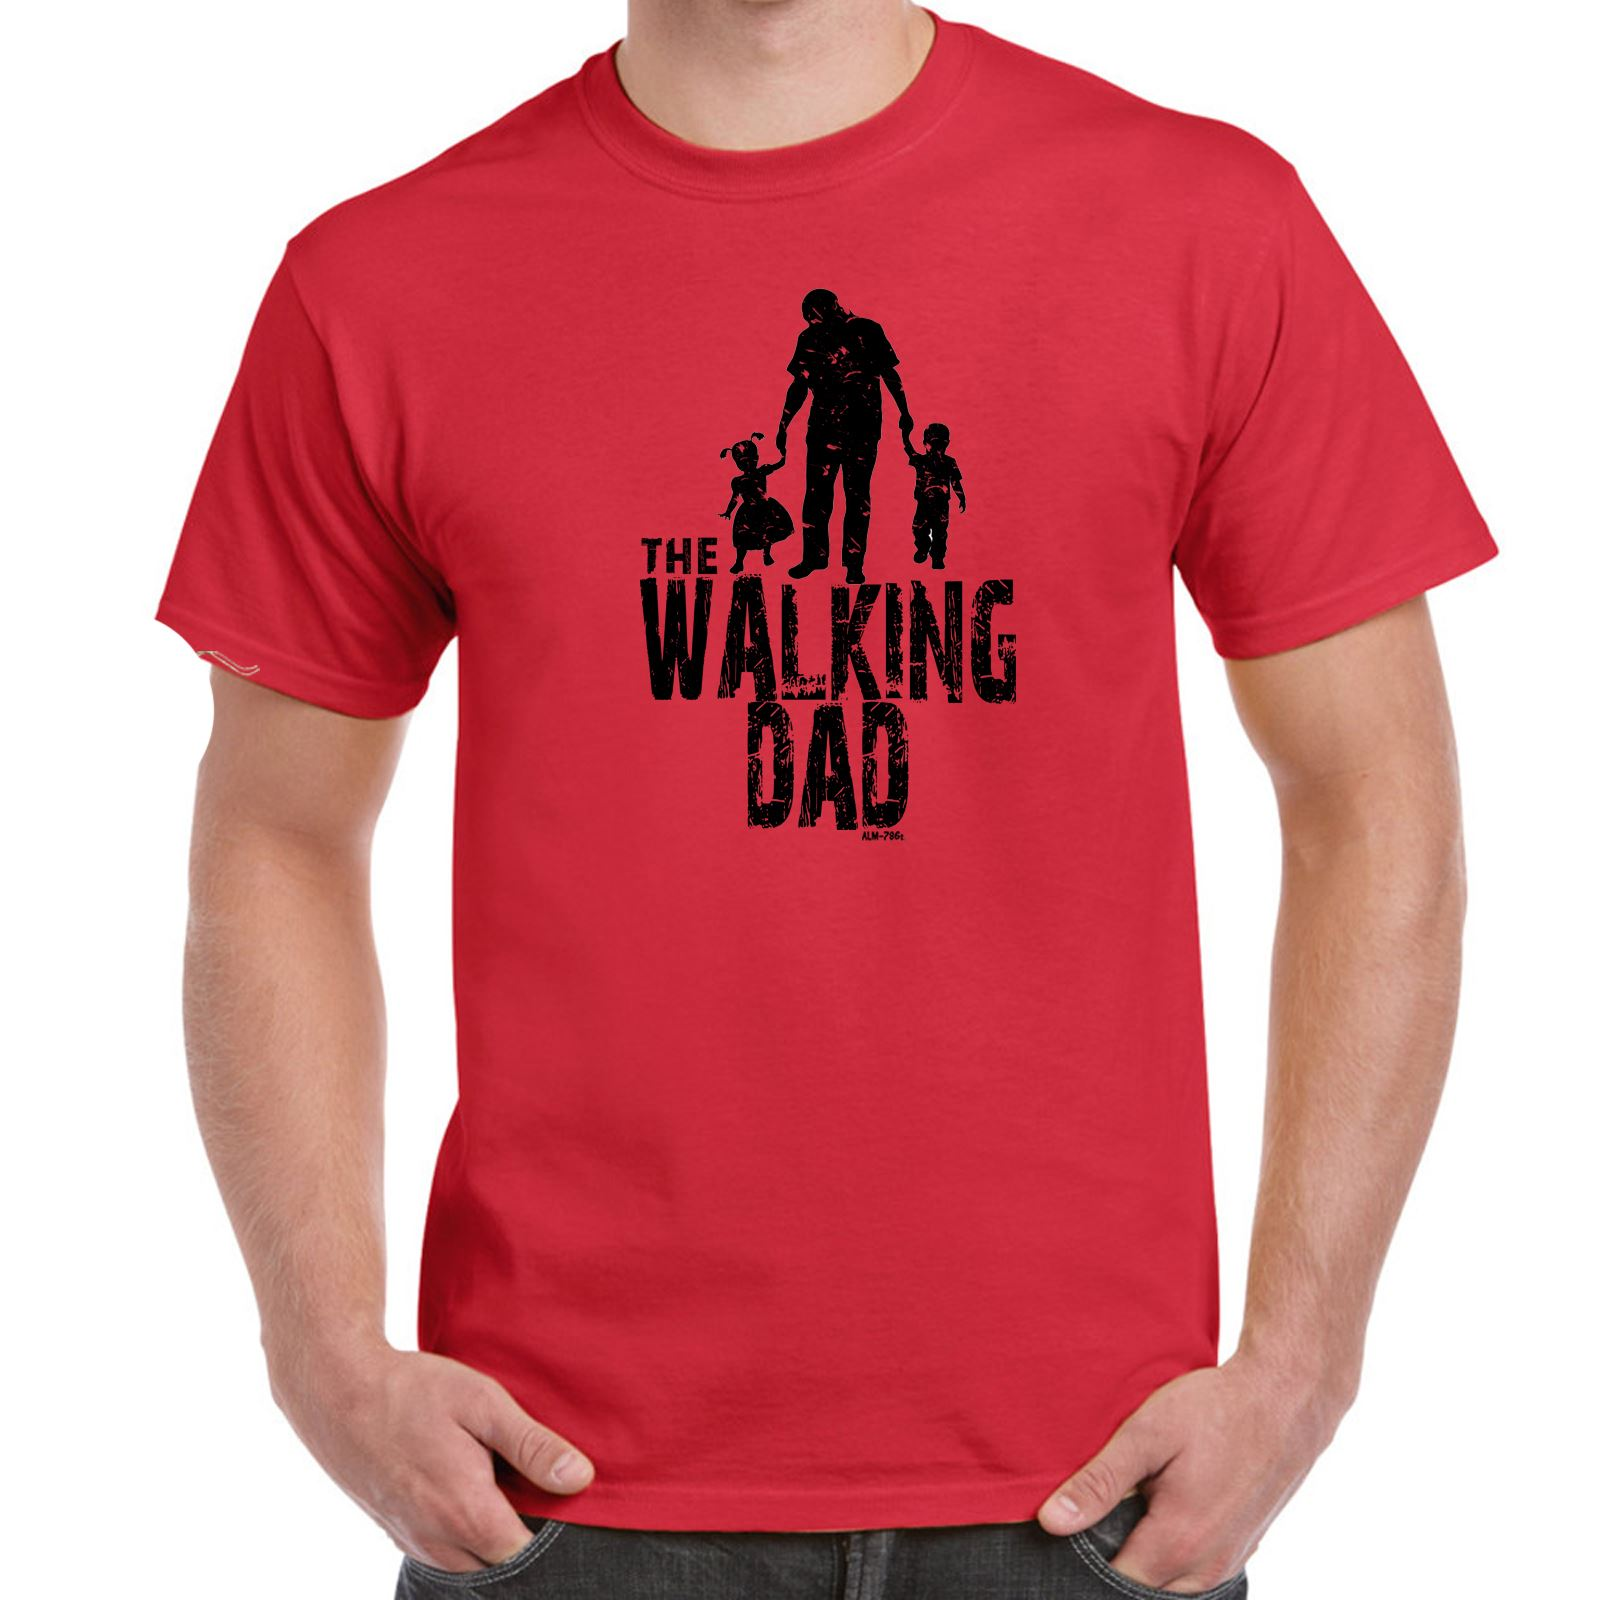 ALM786t Mens Funny Slogans T Shirts The Walking